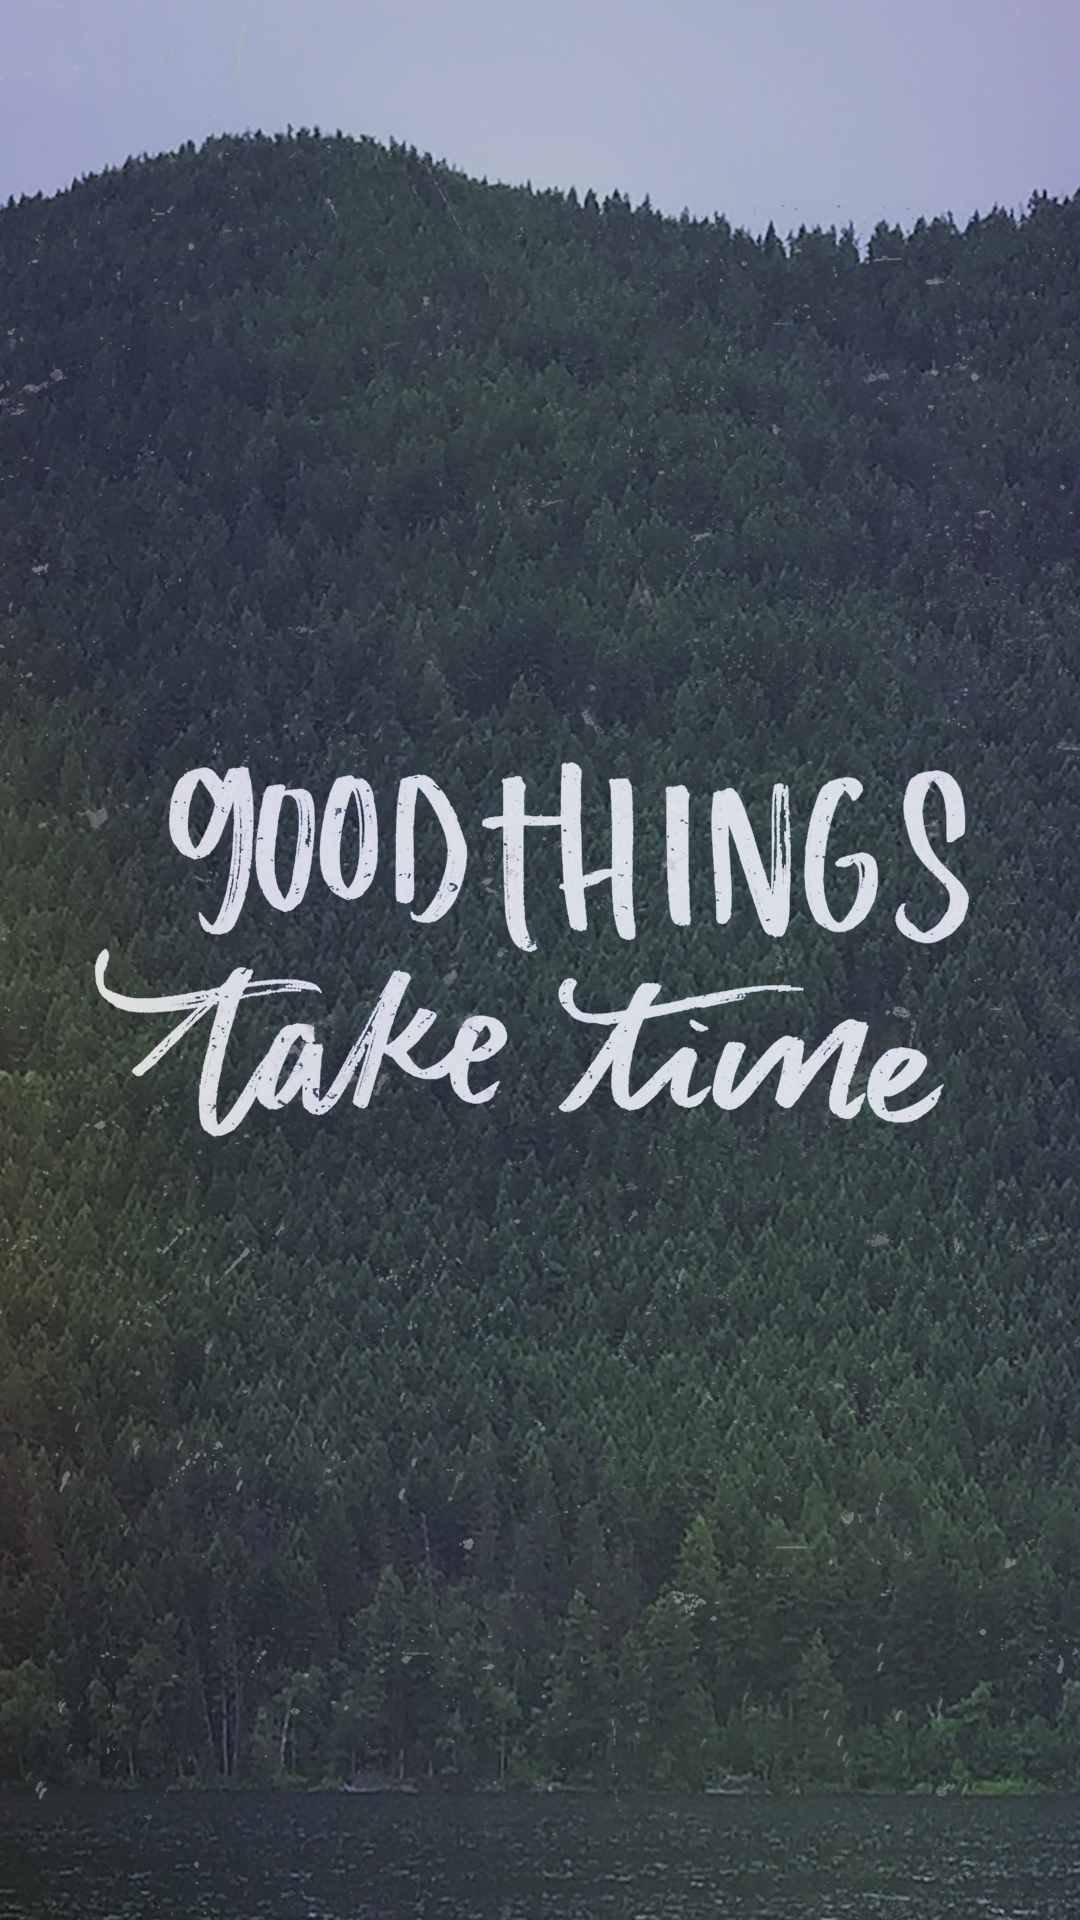 Wholesome Quote Wallpaper Good Things Take Time April Tech Wallpapers Lemon Thistle